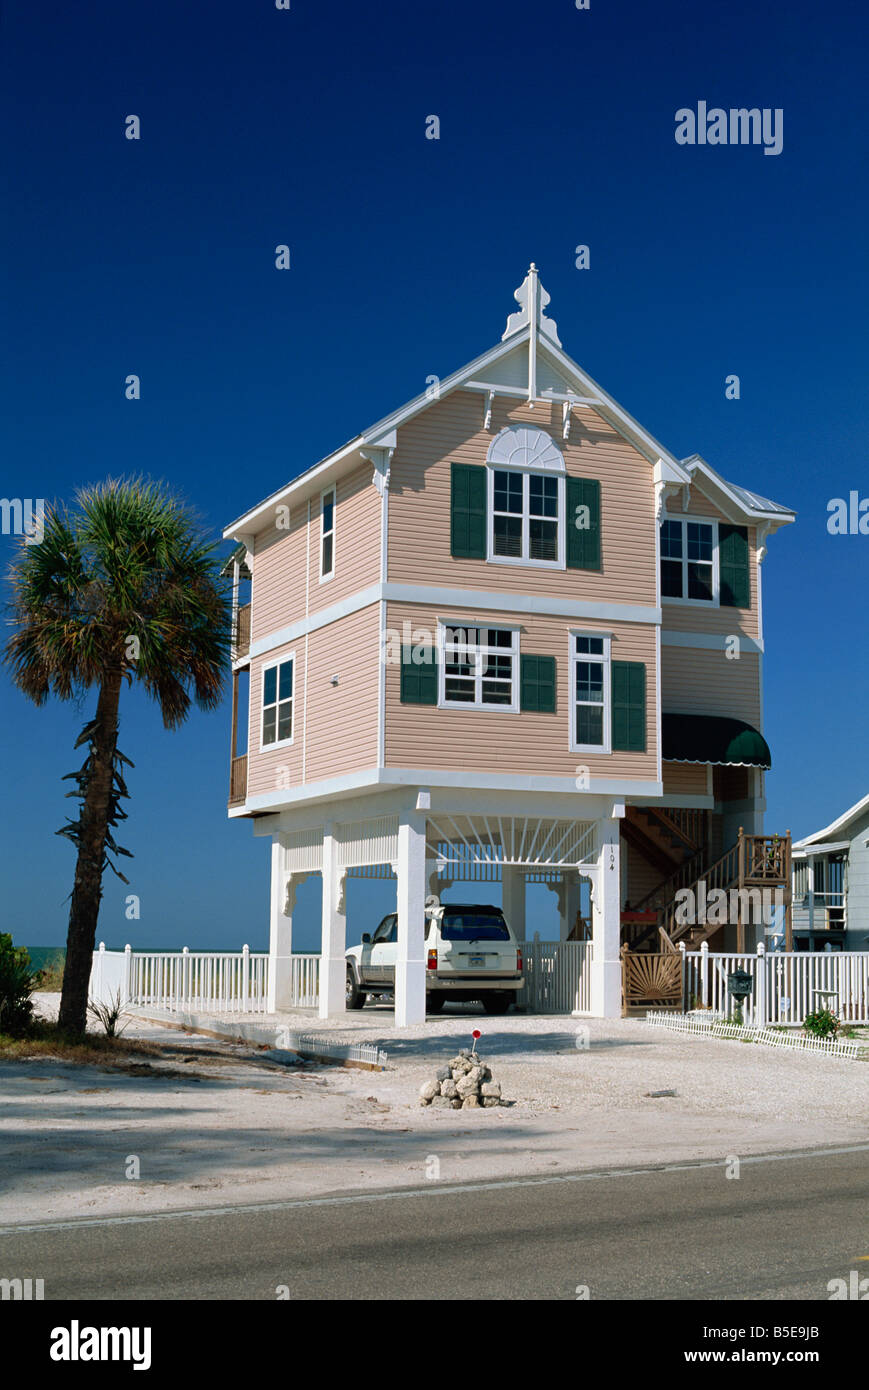 A modern house by the beach in the gulf coast town of bradenton beach south of tampa florida usa north america